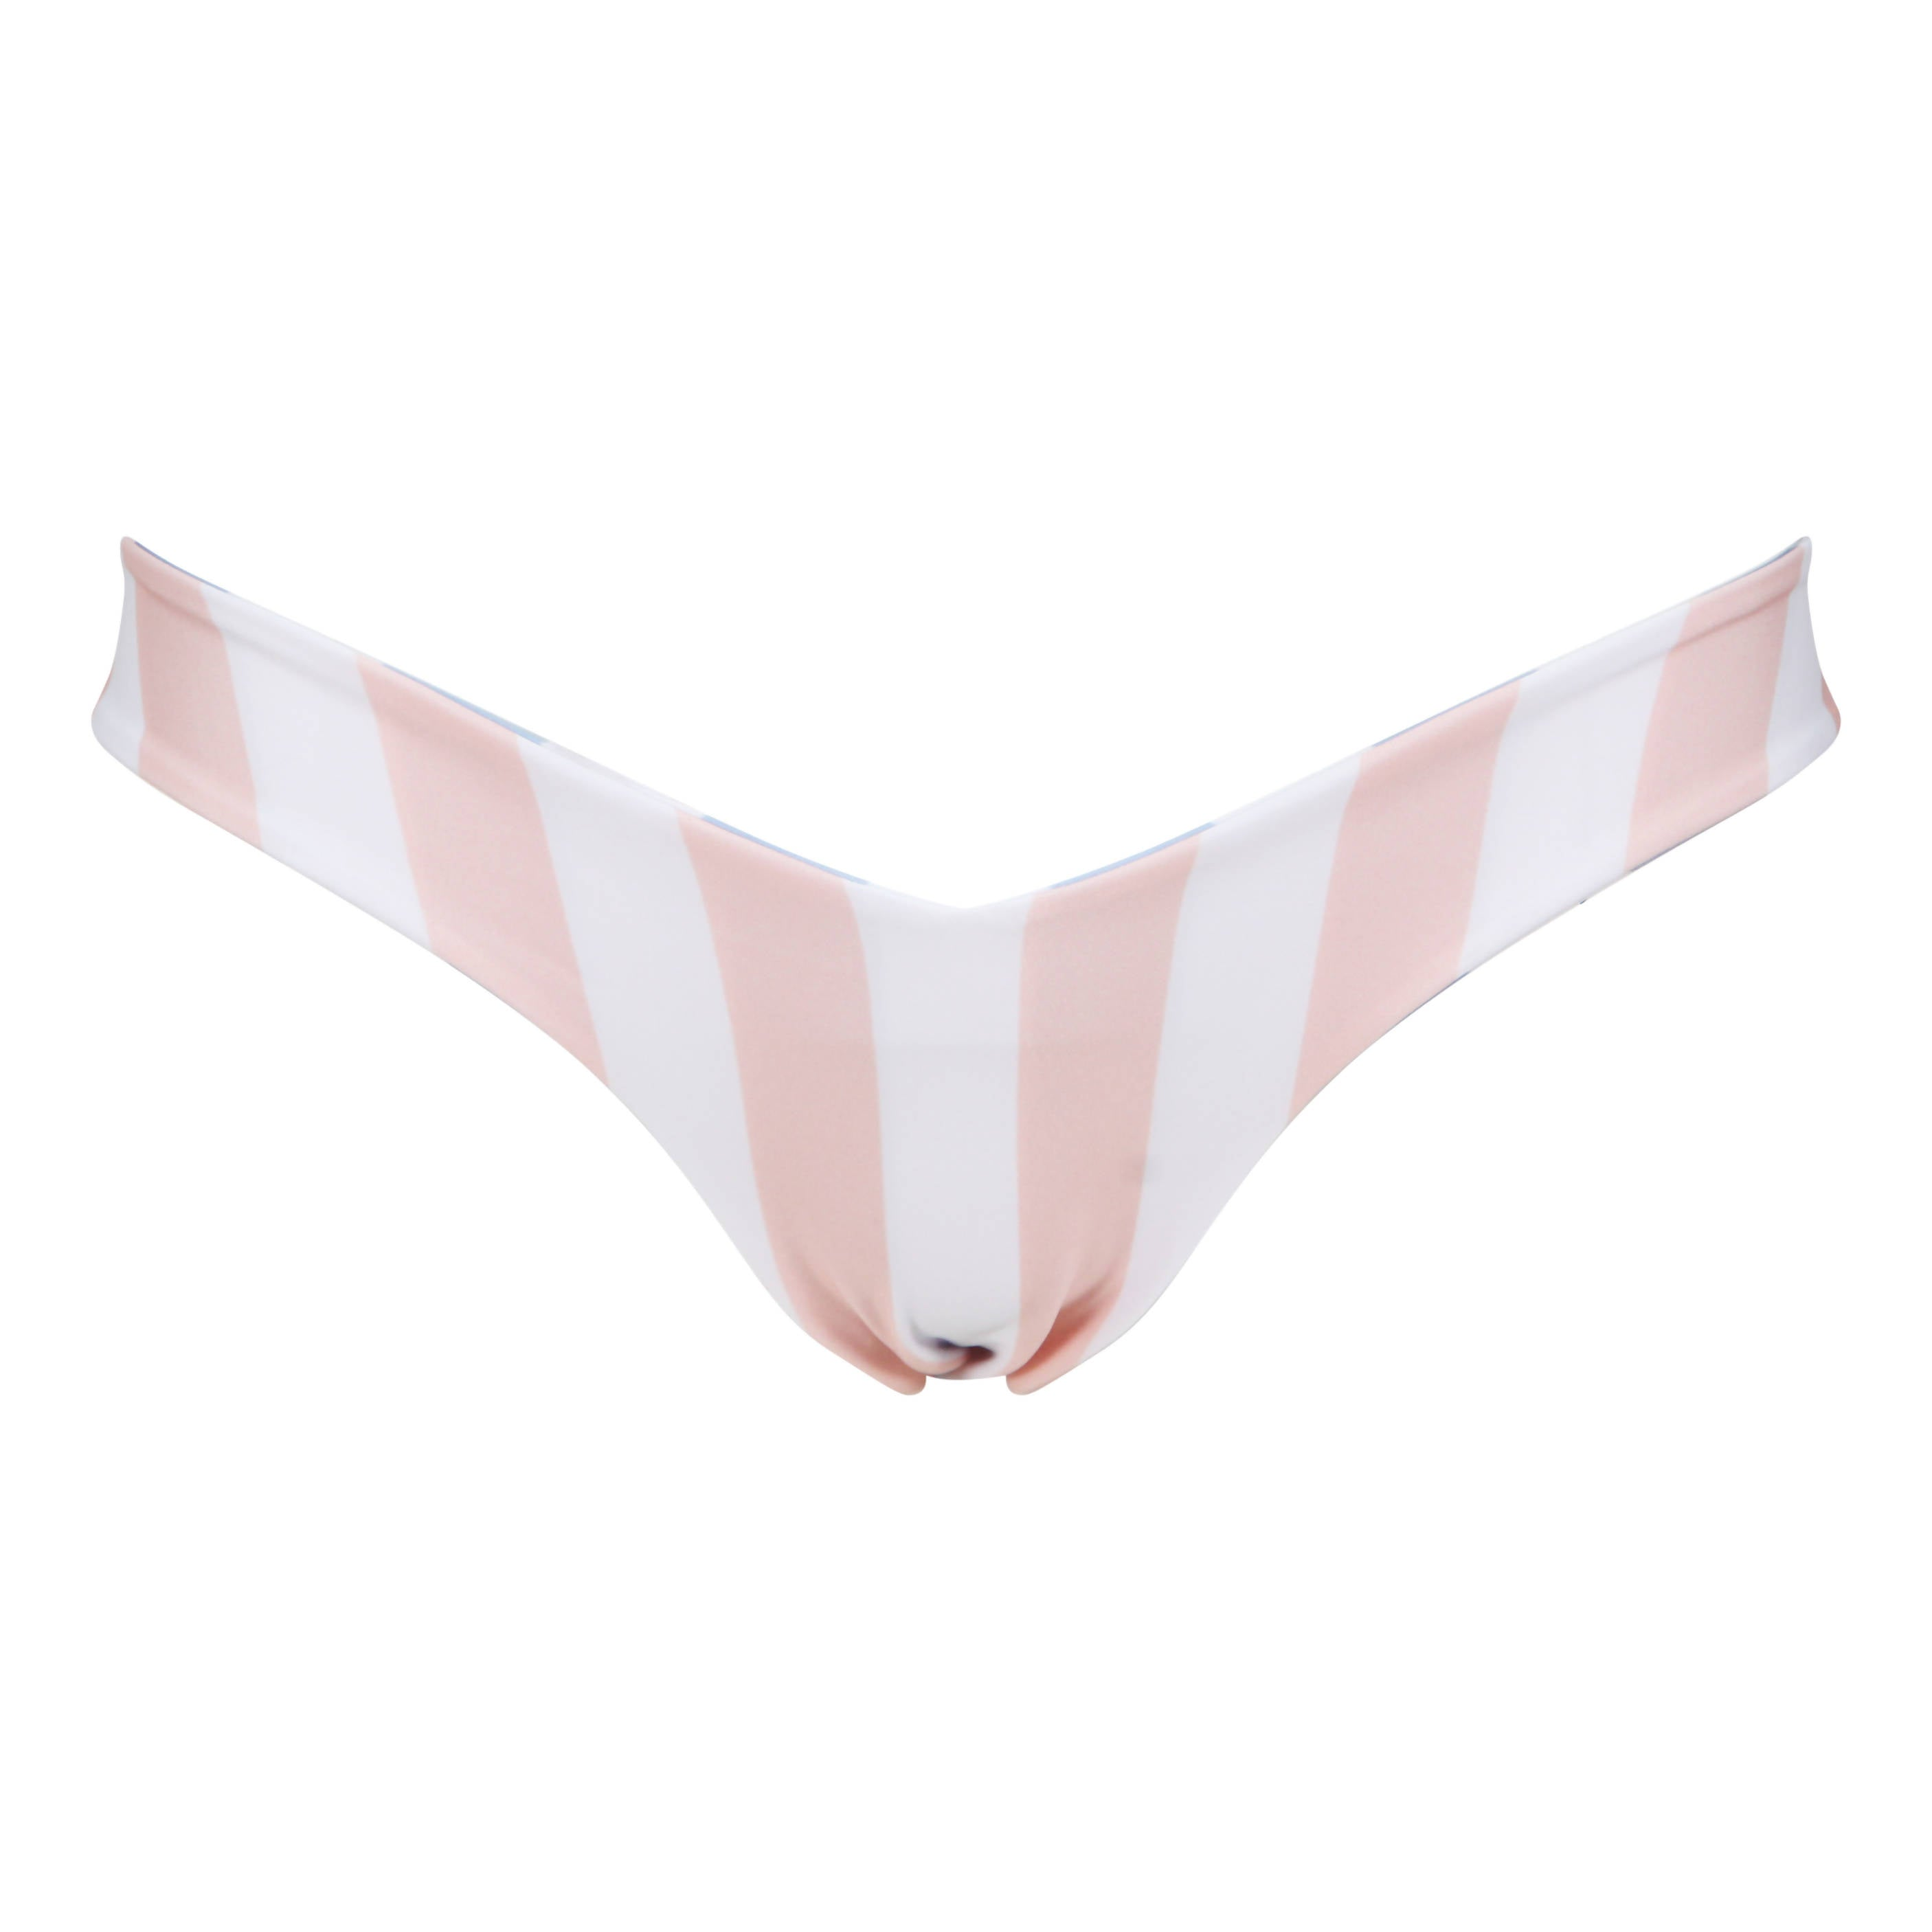 PETRA BOTTOMS - SERENITY BLUE / ROSE PINK